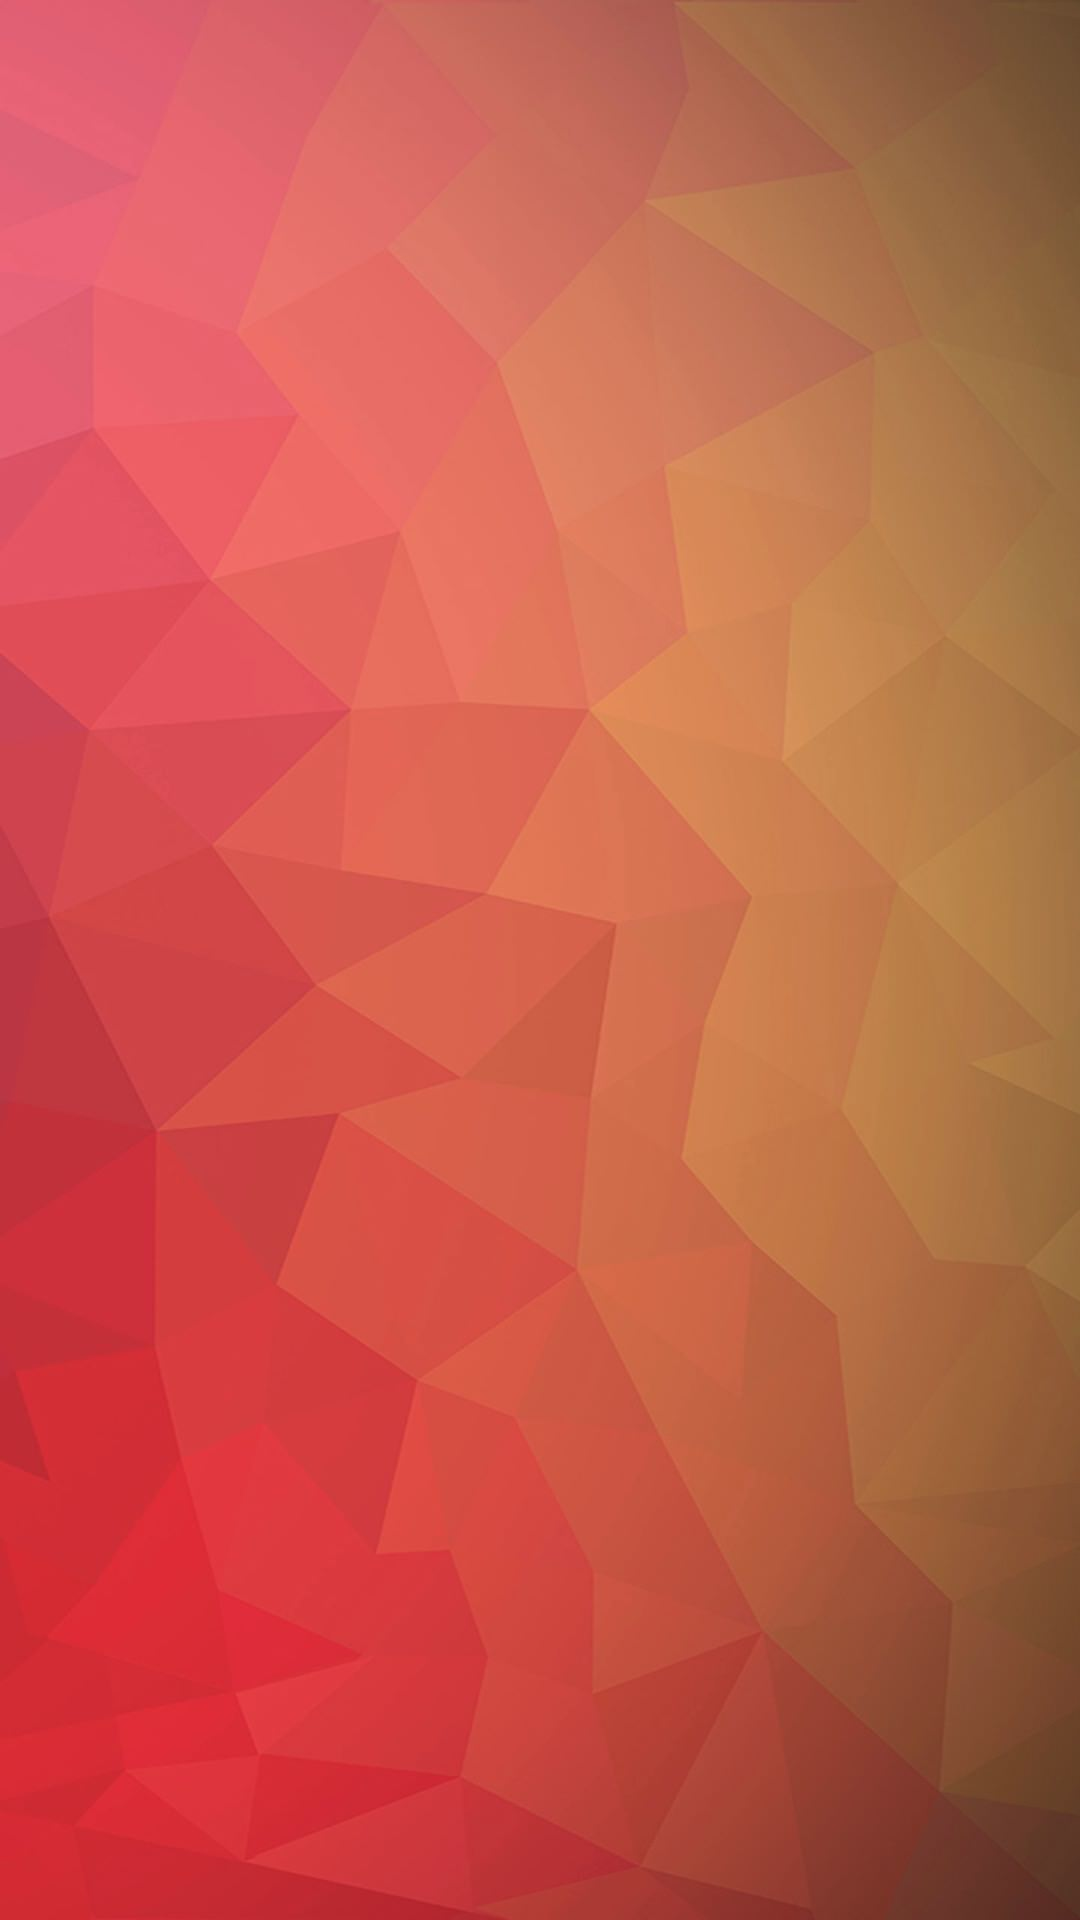 Car Wallpapers For Android Tablet Pattern Red Peach Orange Cool Wallpaper Sc Smartphone